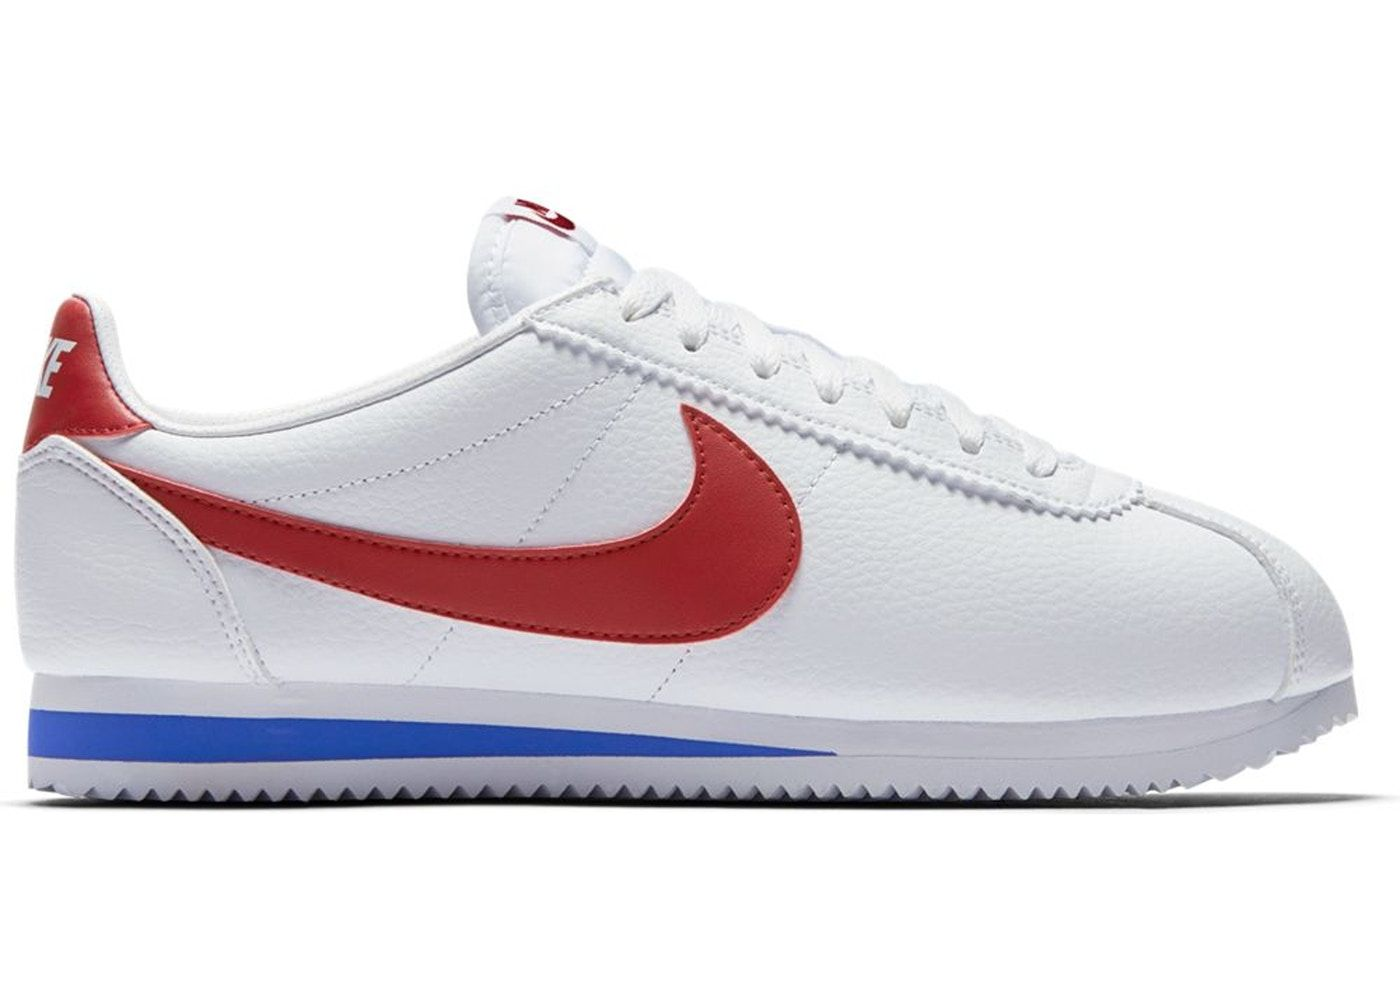 bbfe3e88 Buy and sell authentic Nike Classic Cortez Forrest Gump (2018) shoes  749571-154 and thousands of other Nike sneakers with price data and release  dates.